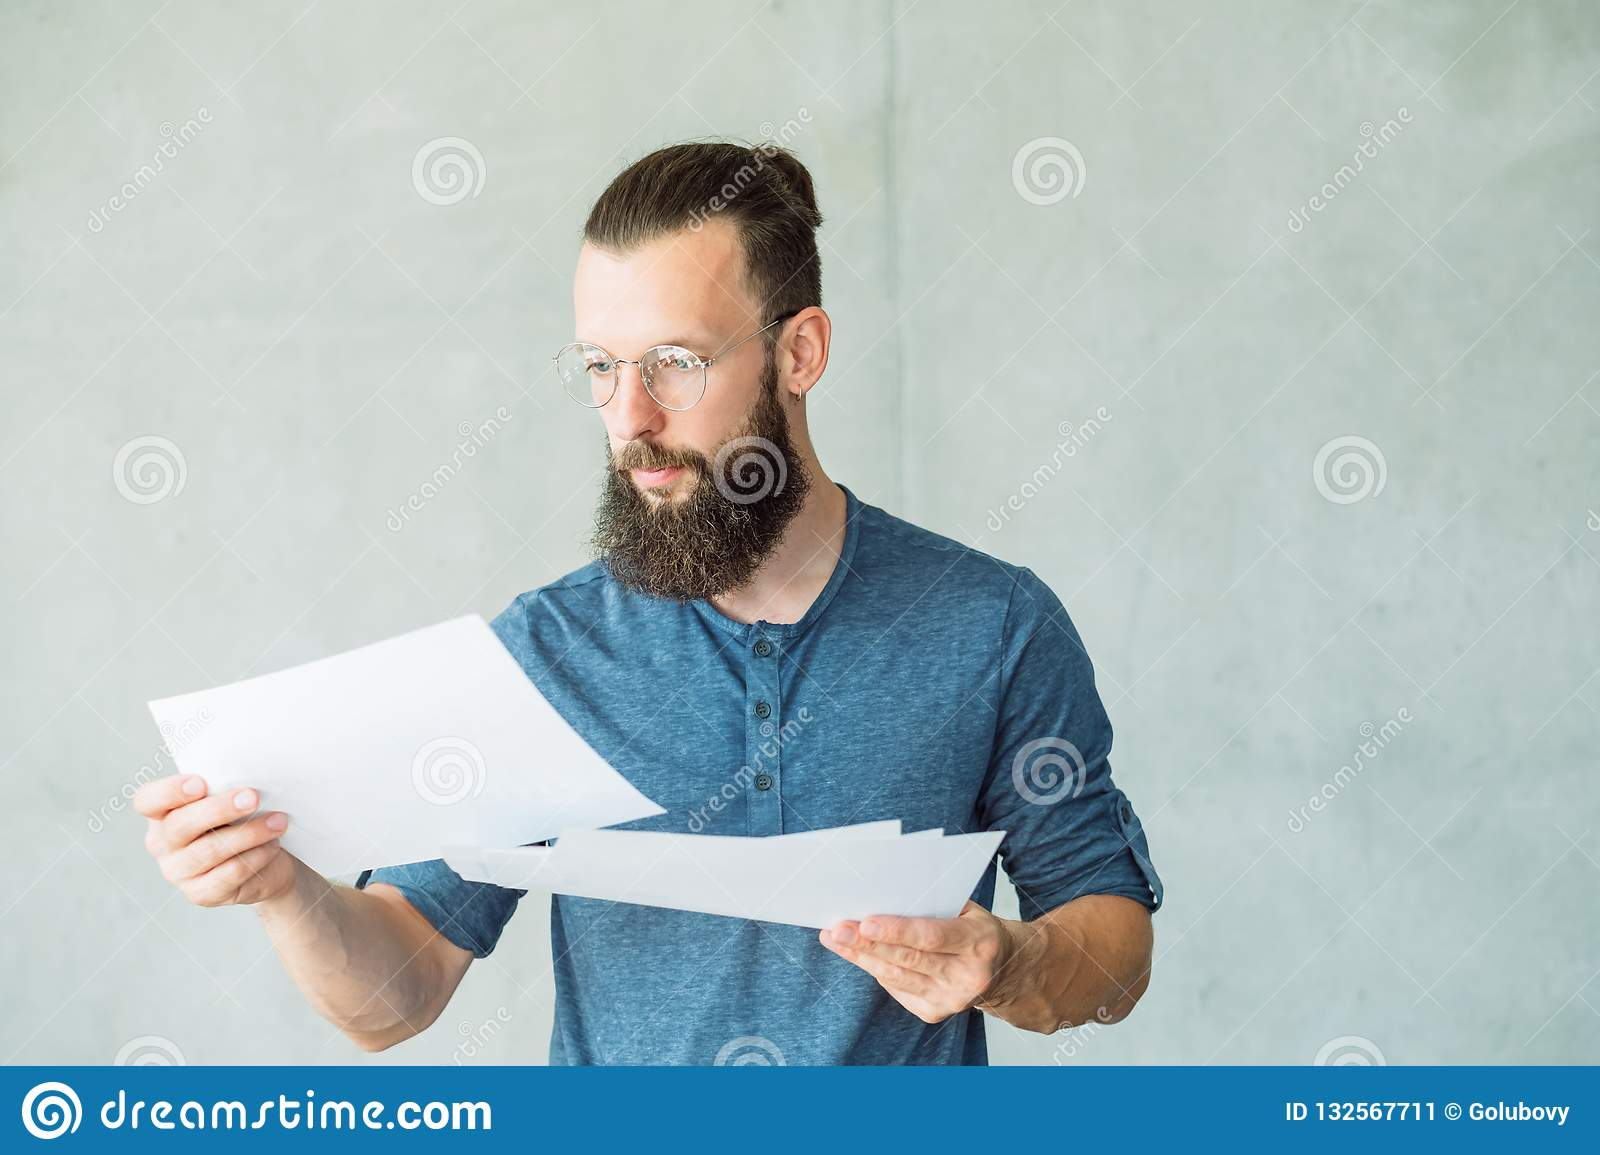 Focused man read business documents information